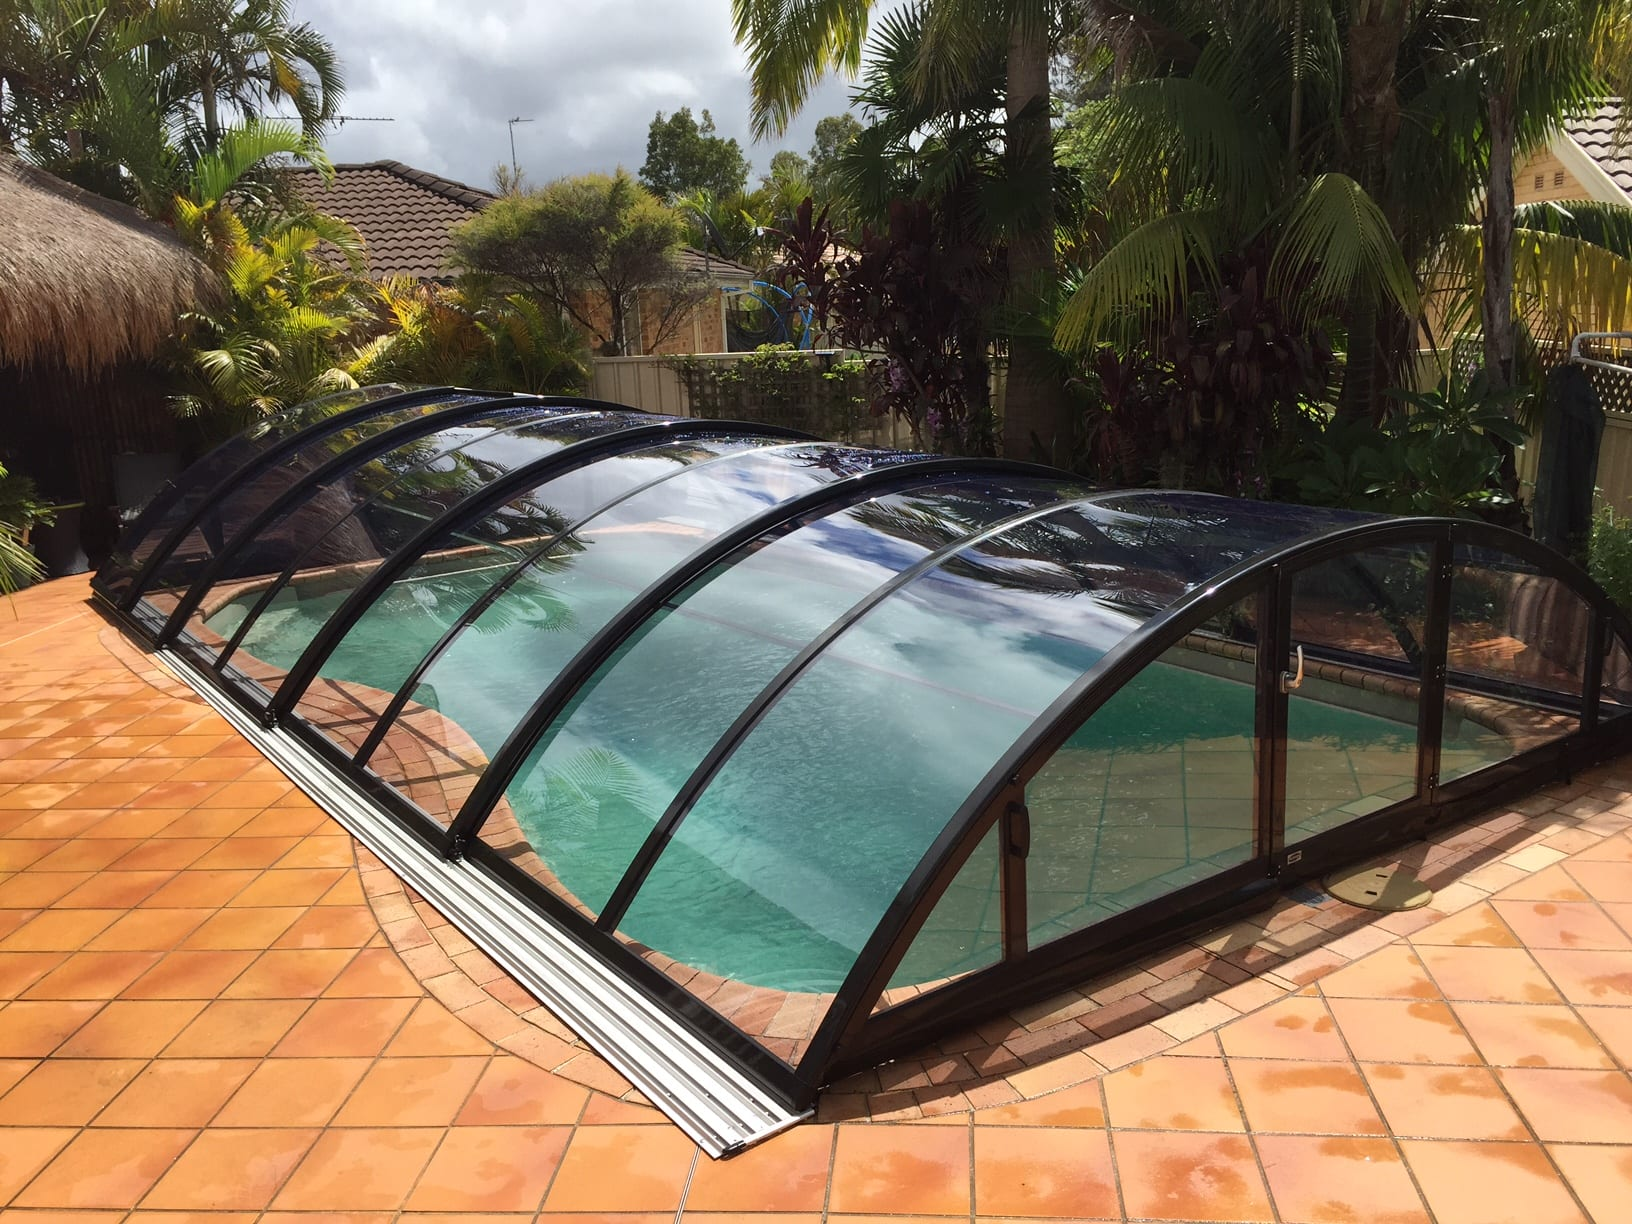 Infinity Pool Komplettset Variety Of Swimming Pool And Enclosure Packages With Options Available